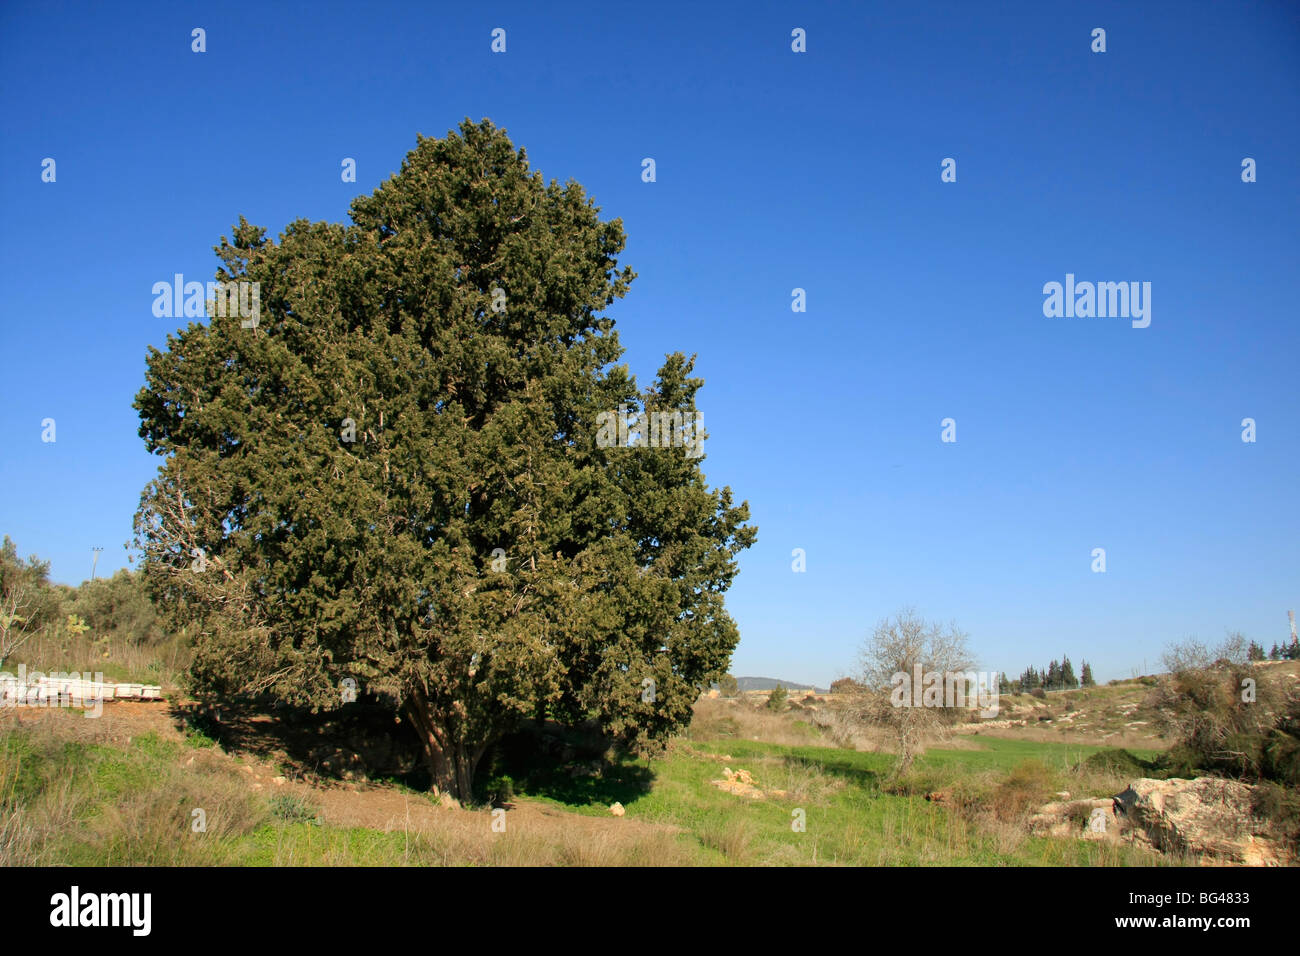 Israel, Lower Galilee, Cypress tree (Cupressus sempervirens) in Ilania - Stock Image